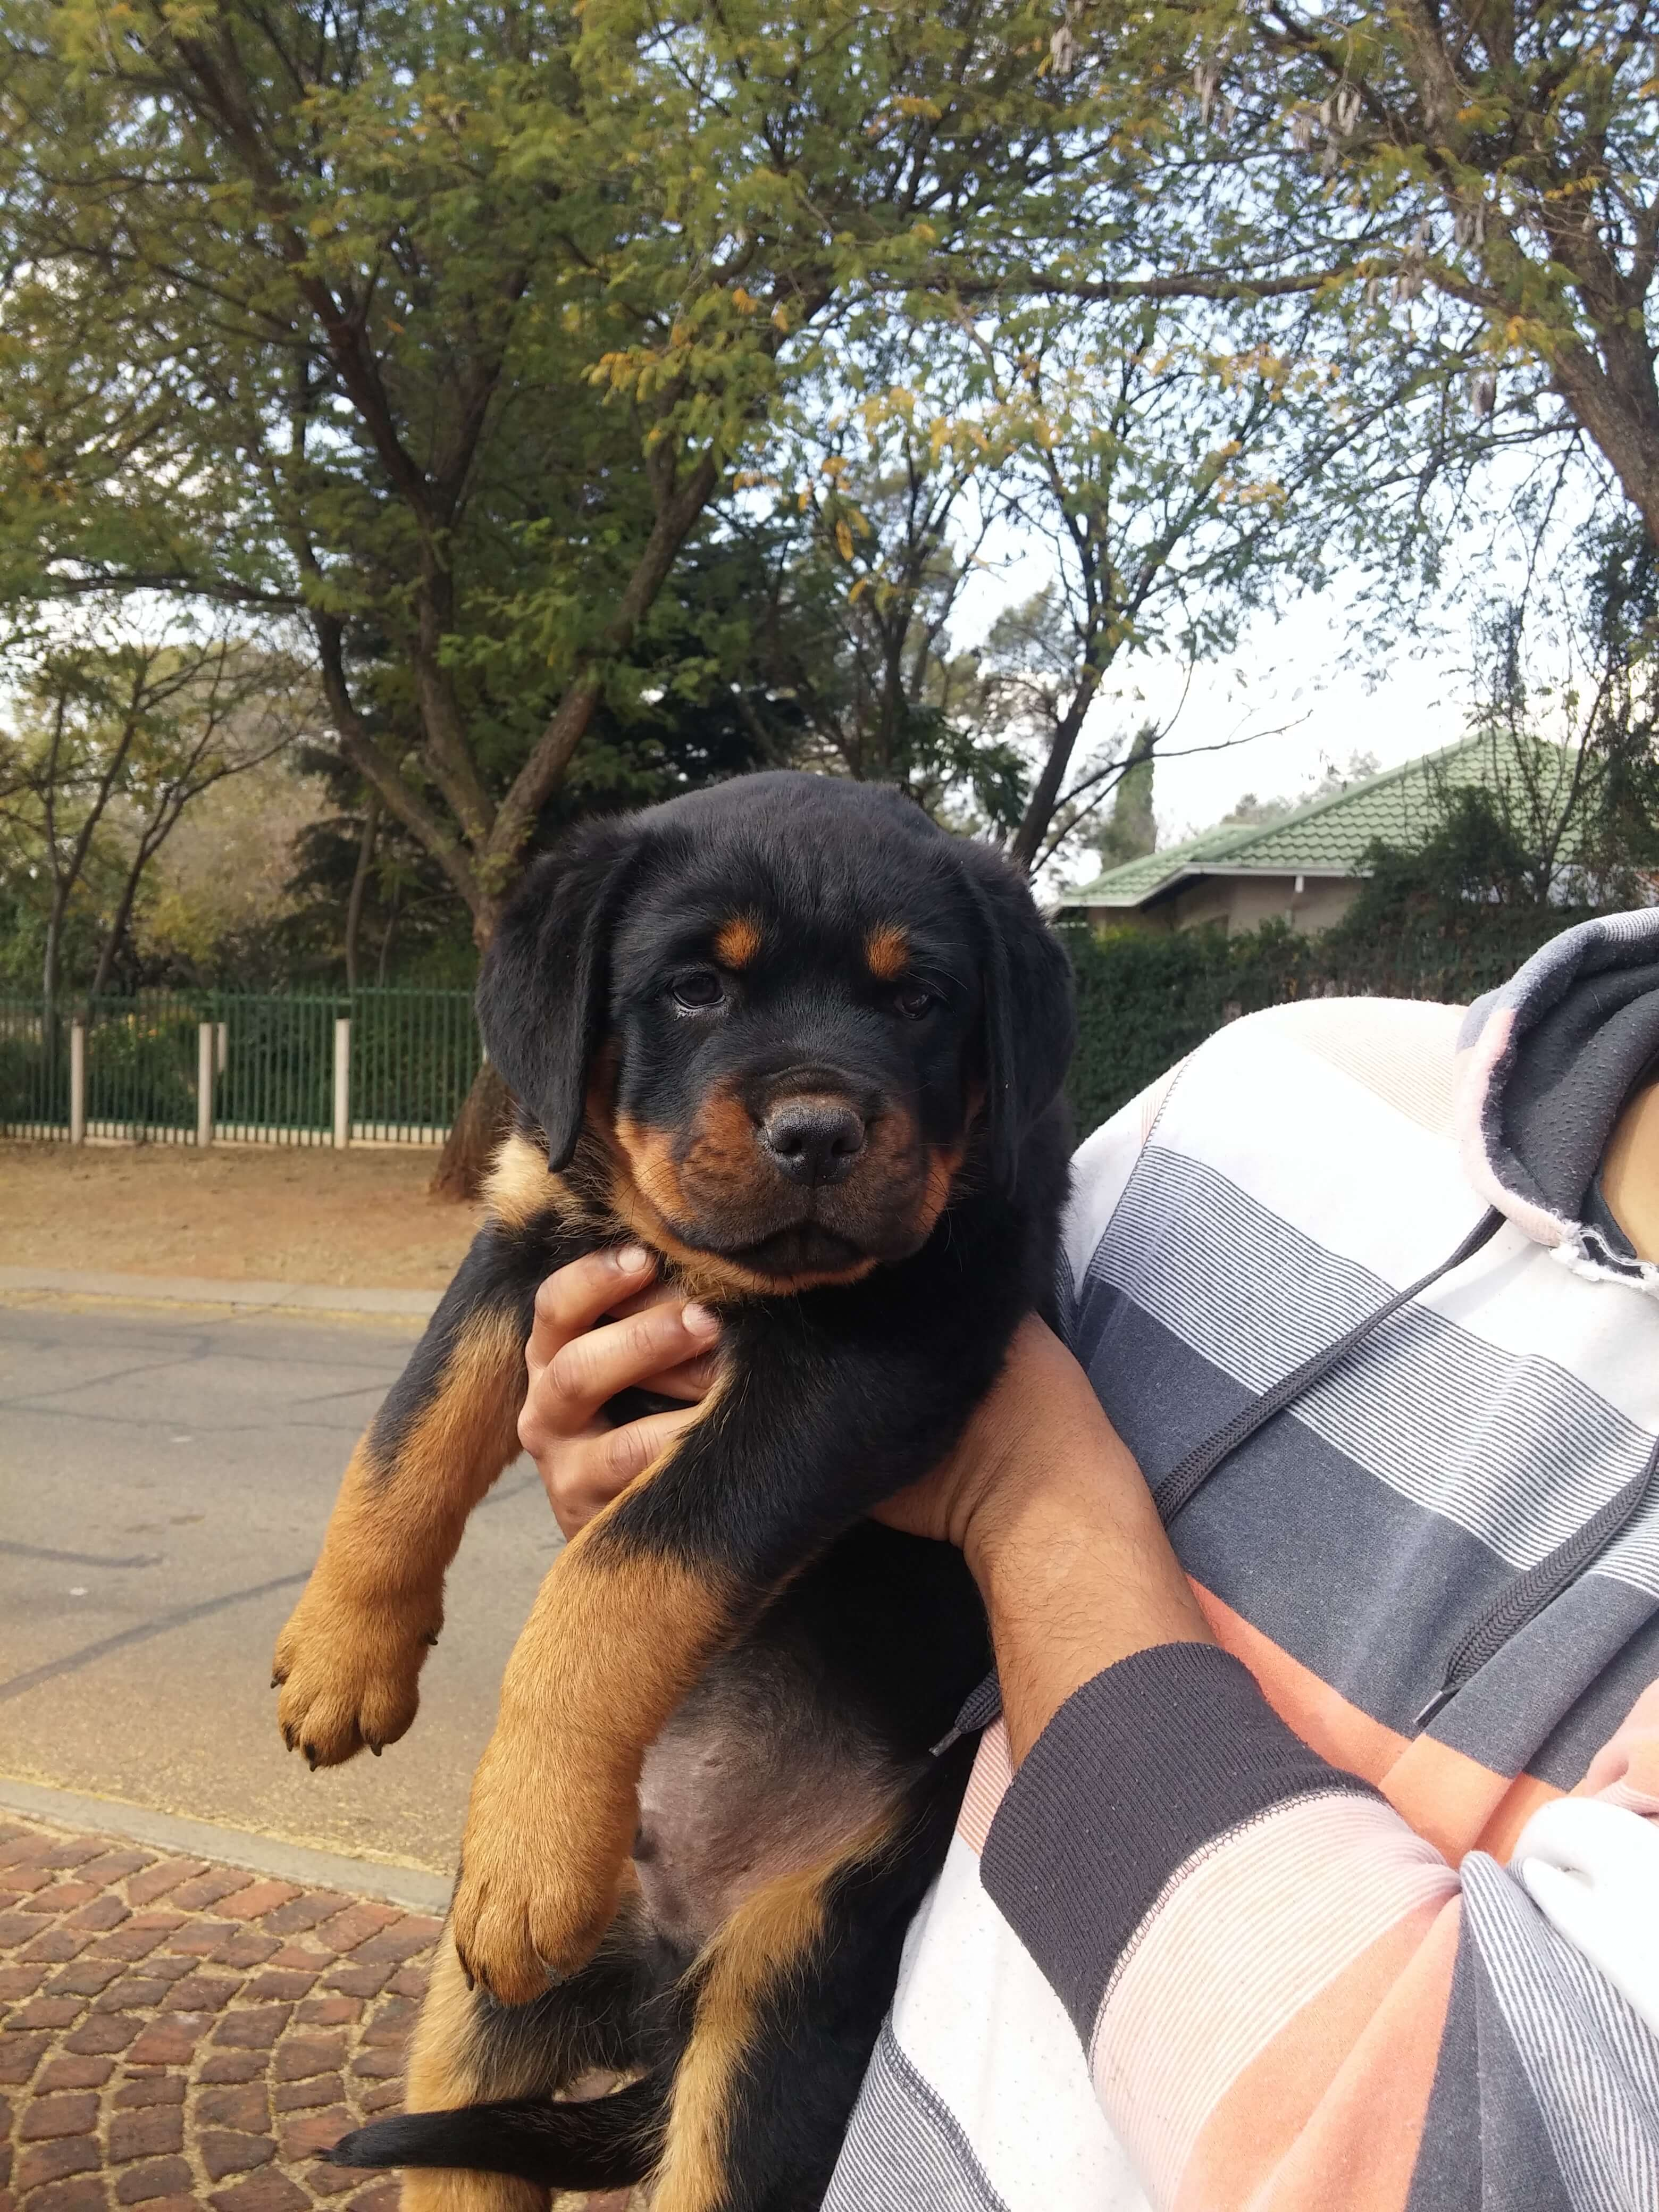 Rottweiler Puppies for Sale in Johannesburg by Bolzy Paladin